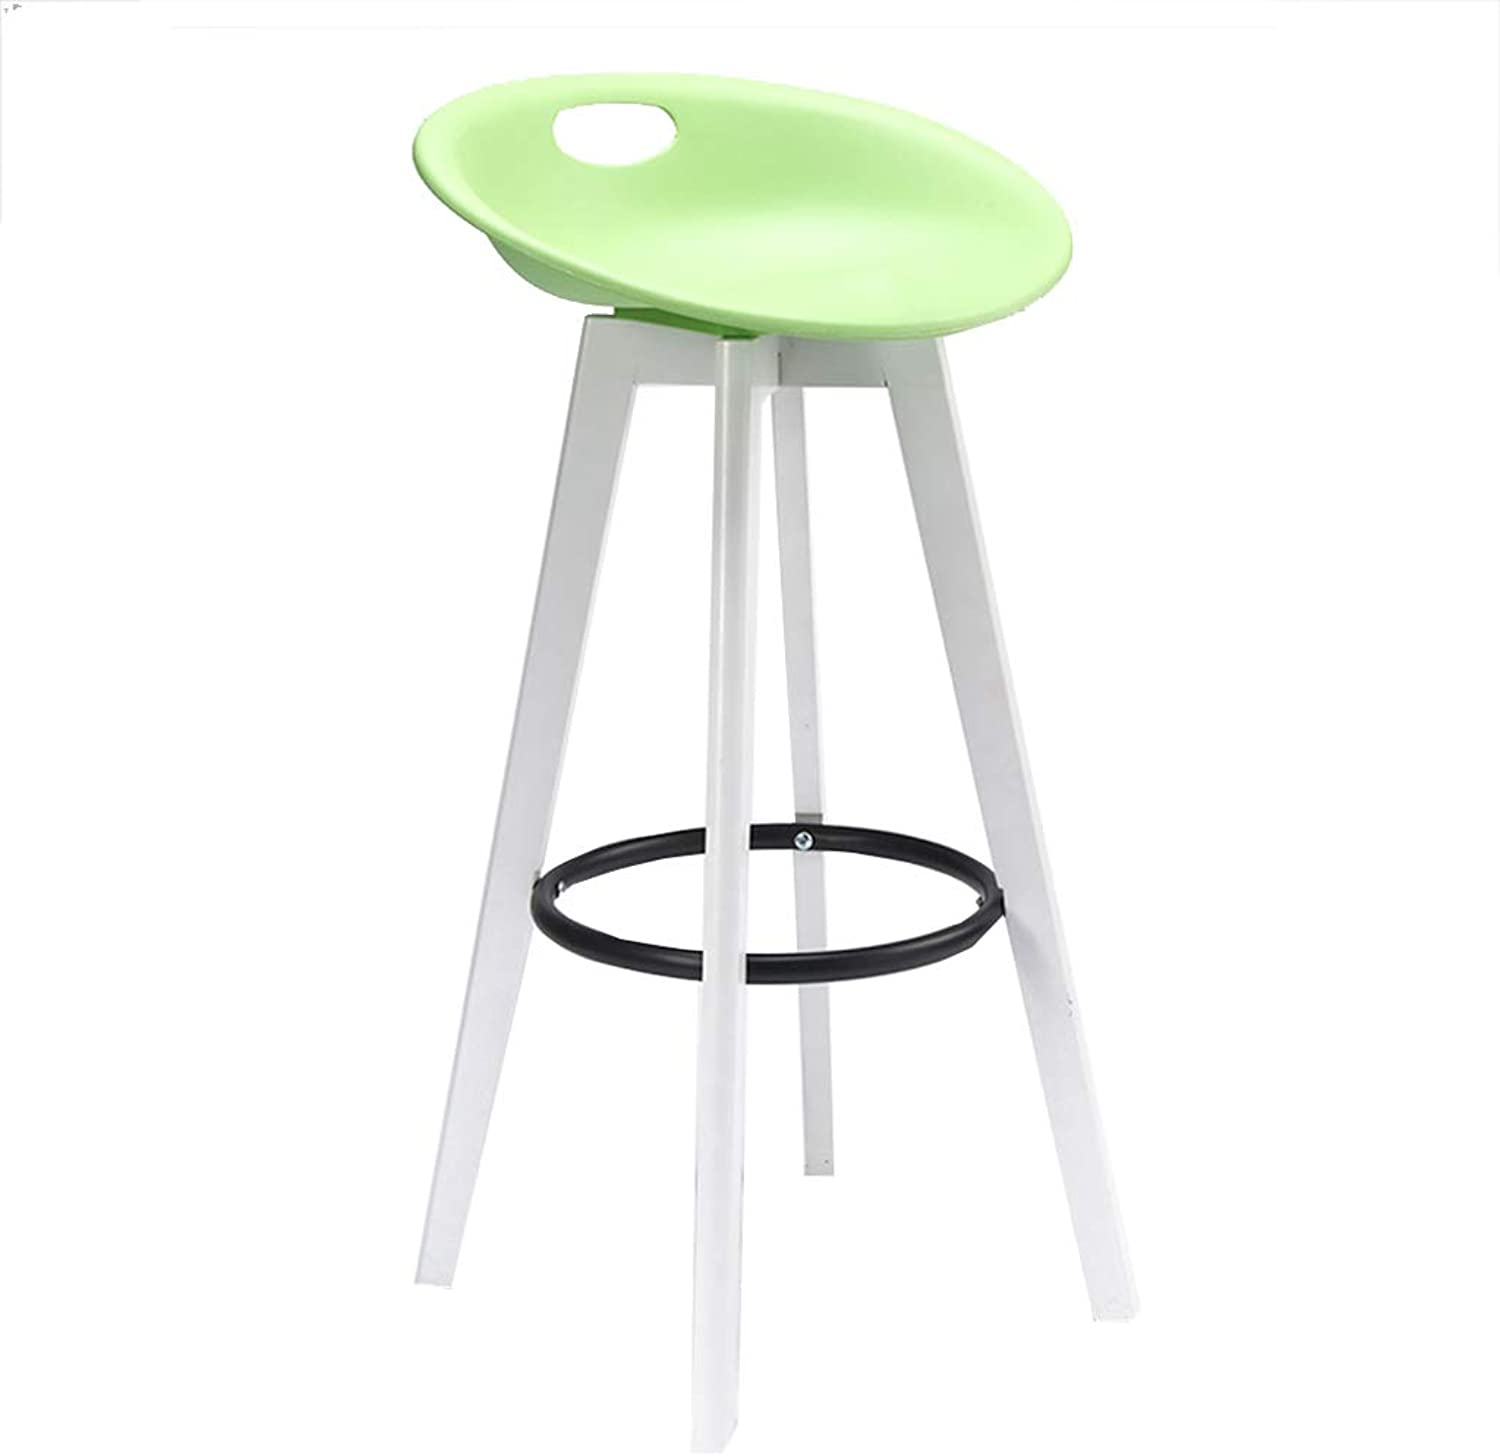 Barstools Portable Bar Stool Breakfast Pub Kitchen Dining Chair Counter Modern White Solid Wood Frame PP Ergonomics Seat Max Load 120kg (color   Green, Size   73cm)